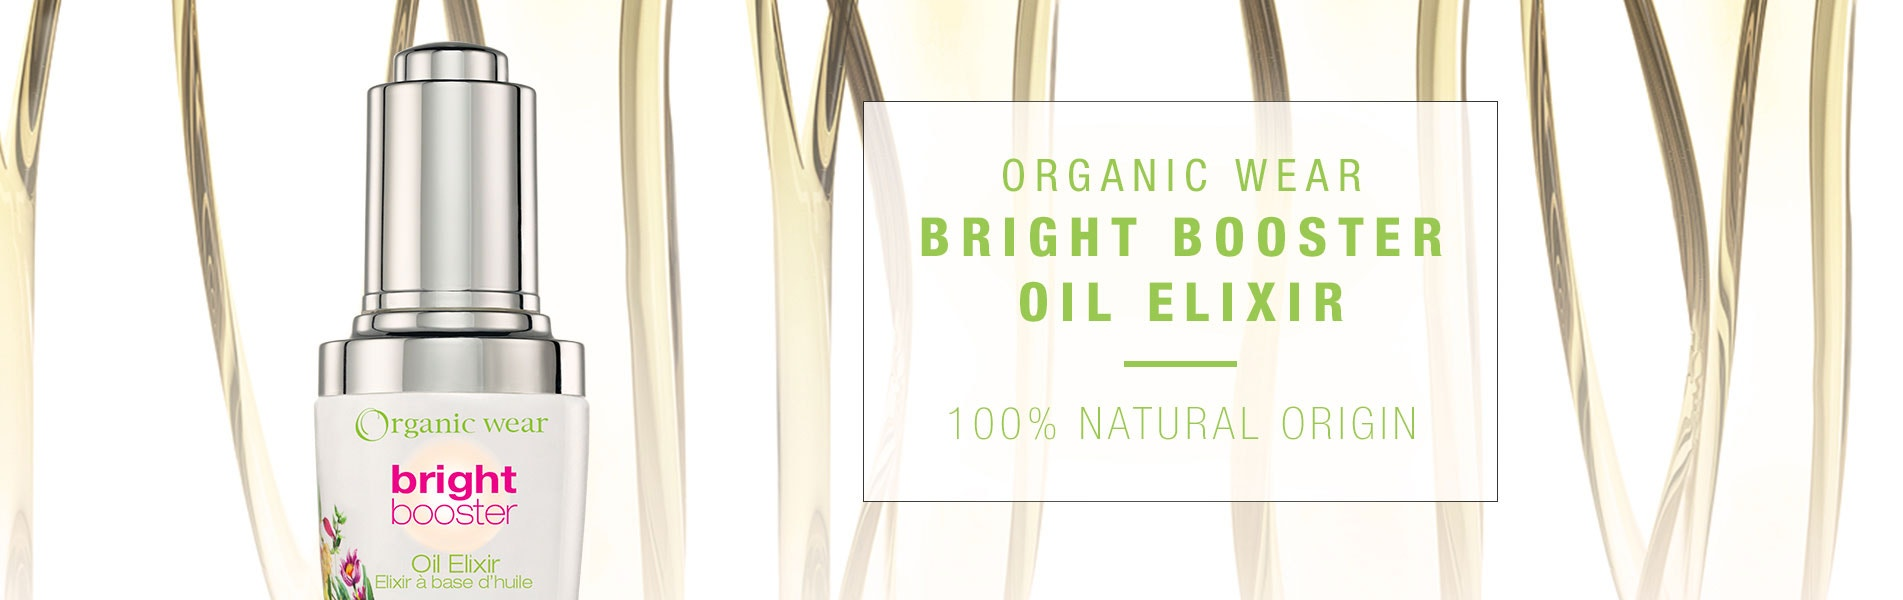 Organic Wear Bright Booster Oil Elixir